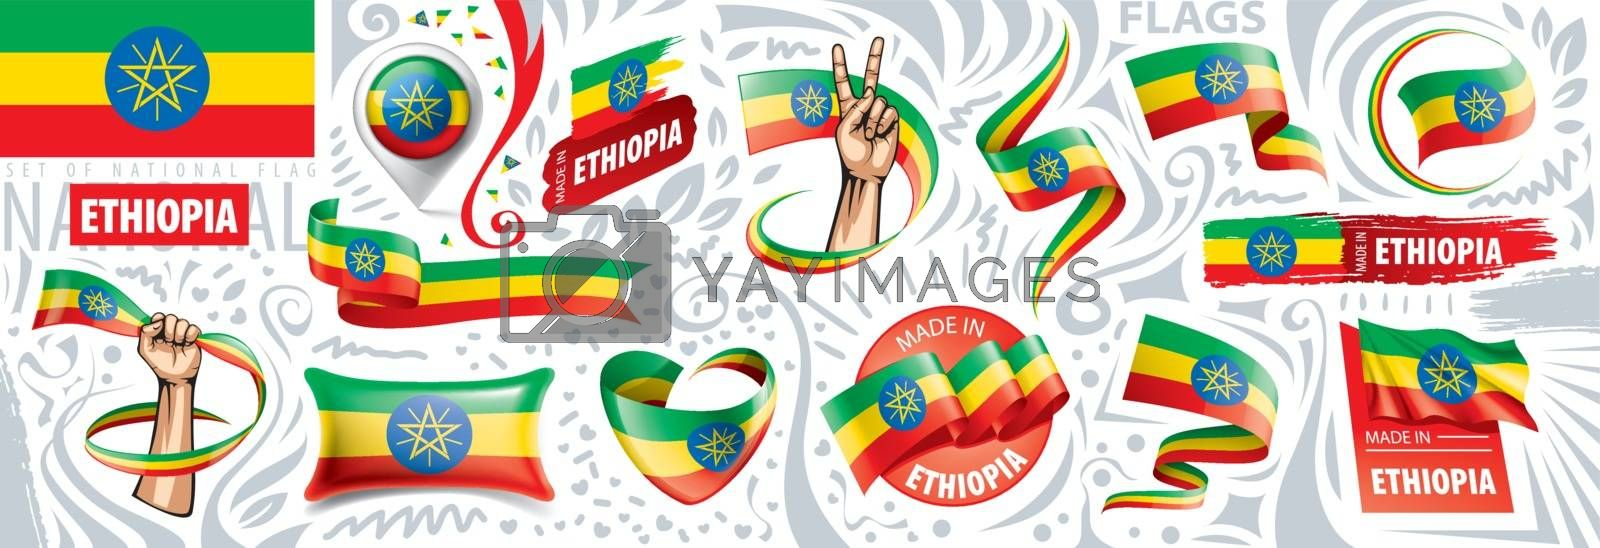 Vector set of the national flag of Ethiopia in various creative designs.